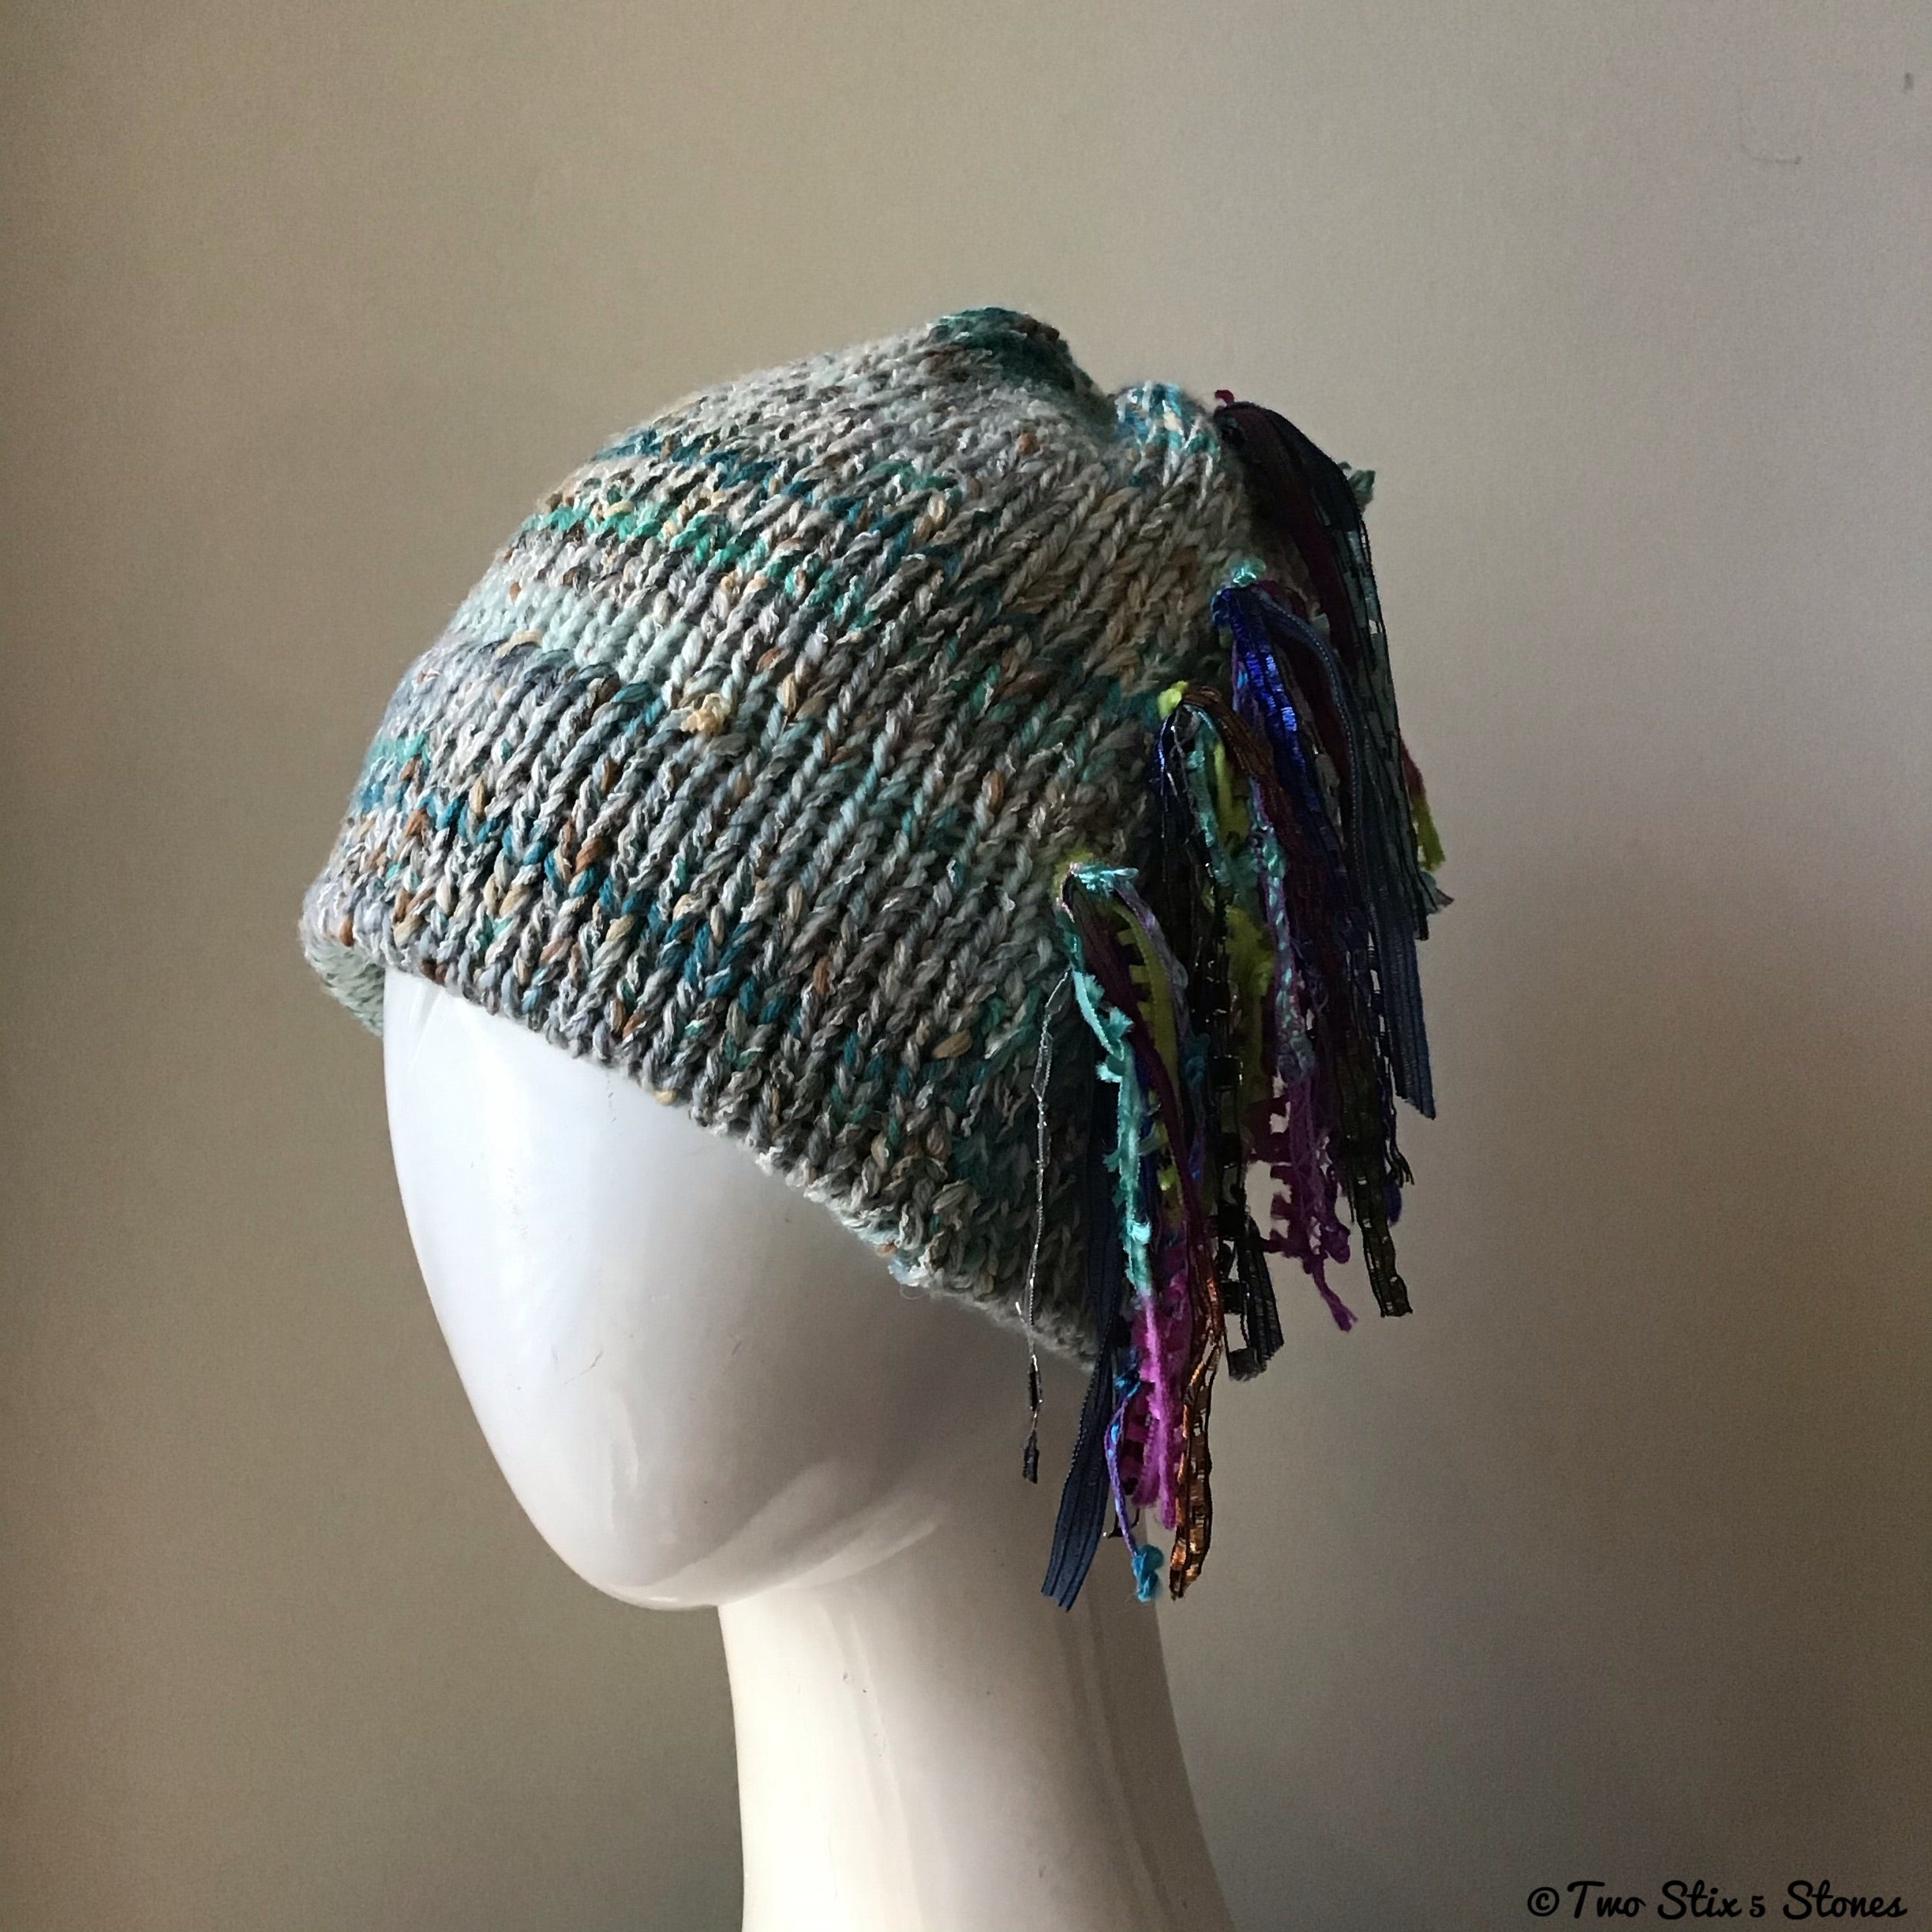 Pale Blue & Turquoise Tweed Signature *Funky Chic* Hat